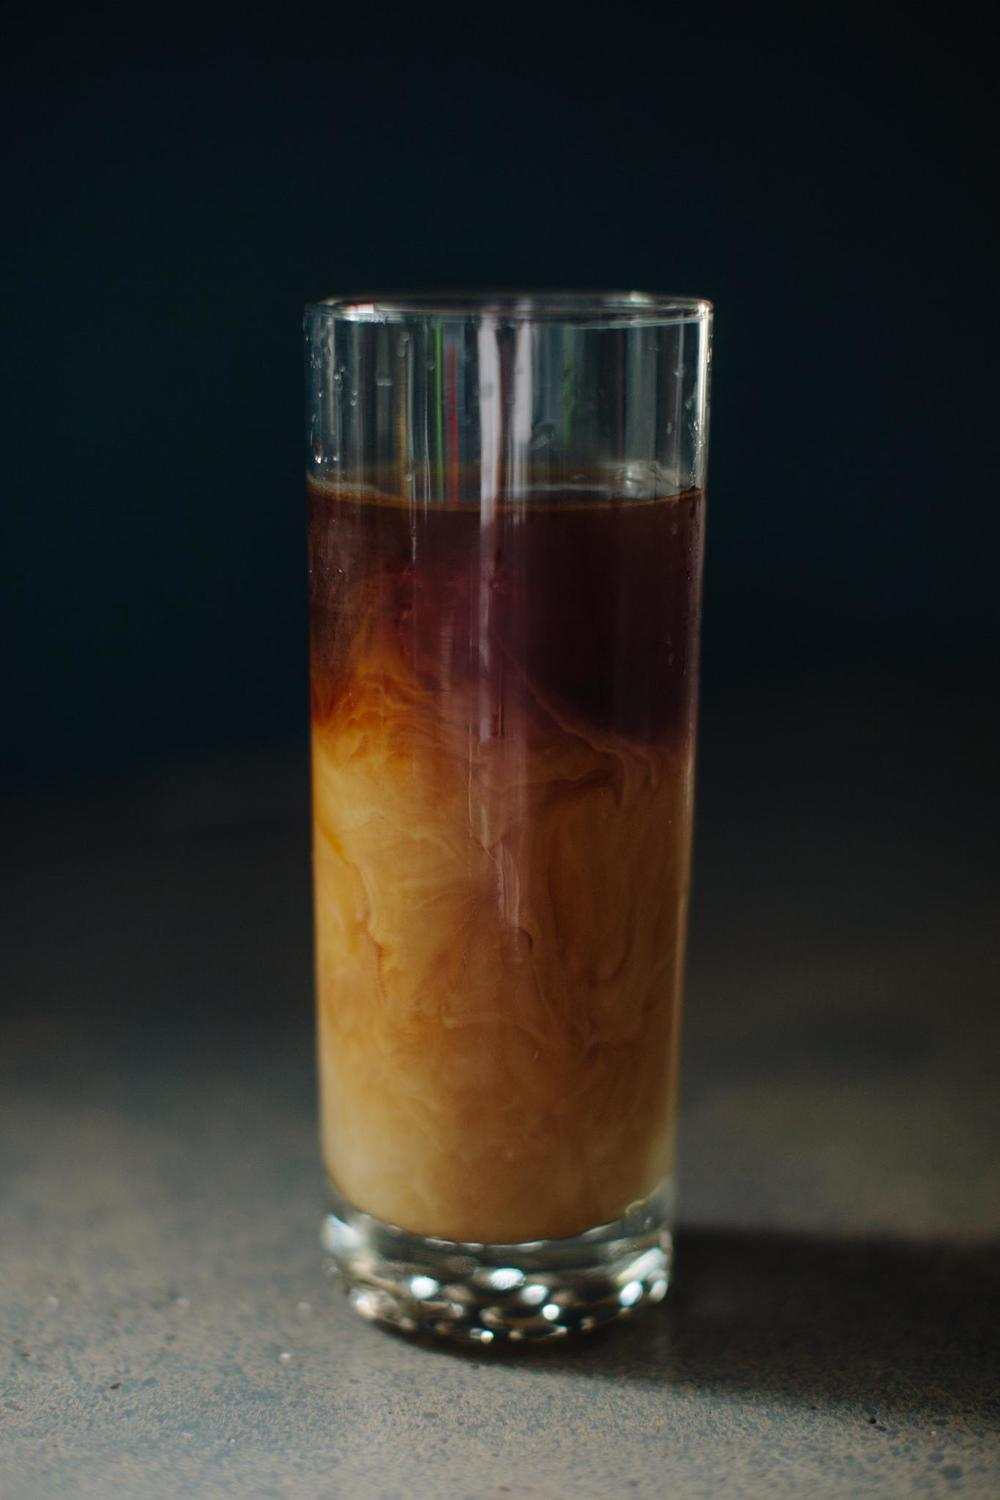 homemade_iced_coffee_5911.jpg